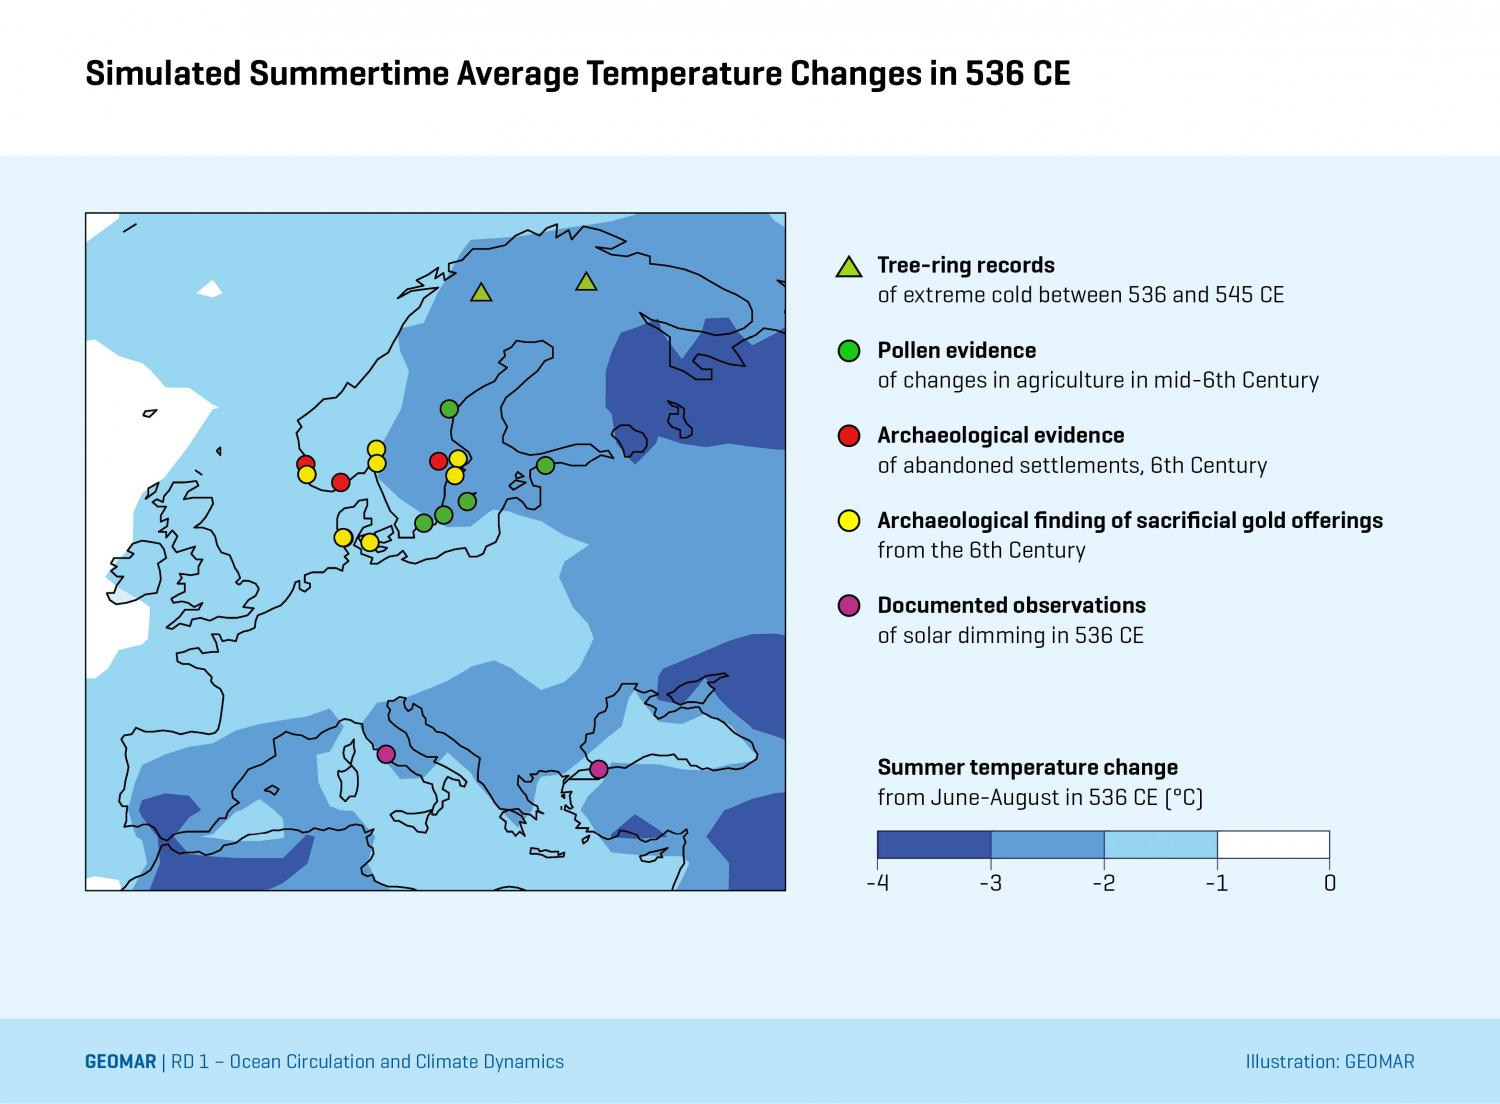 Simulated summertime (June-August) average temperature changes in 536 CE due to the stratospheric aerosol cloud resulting from an unknown volcanic eruption reconstructed here based on contemporary written records and ice core sulfate measurements. The simulated temperature changes, ranging from 1-3 ° C over Europe, show good agreement with estimates from two tree-ring temperature reconstructions based on trees in Northern Scandinavia. Credit: Matt Toohey, GEOMAR